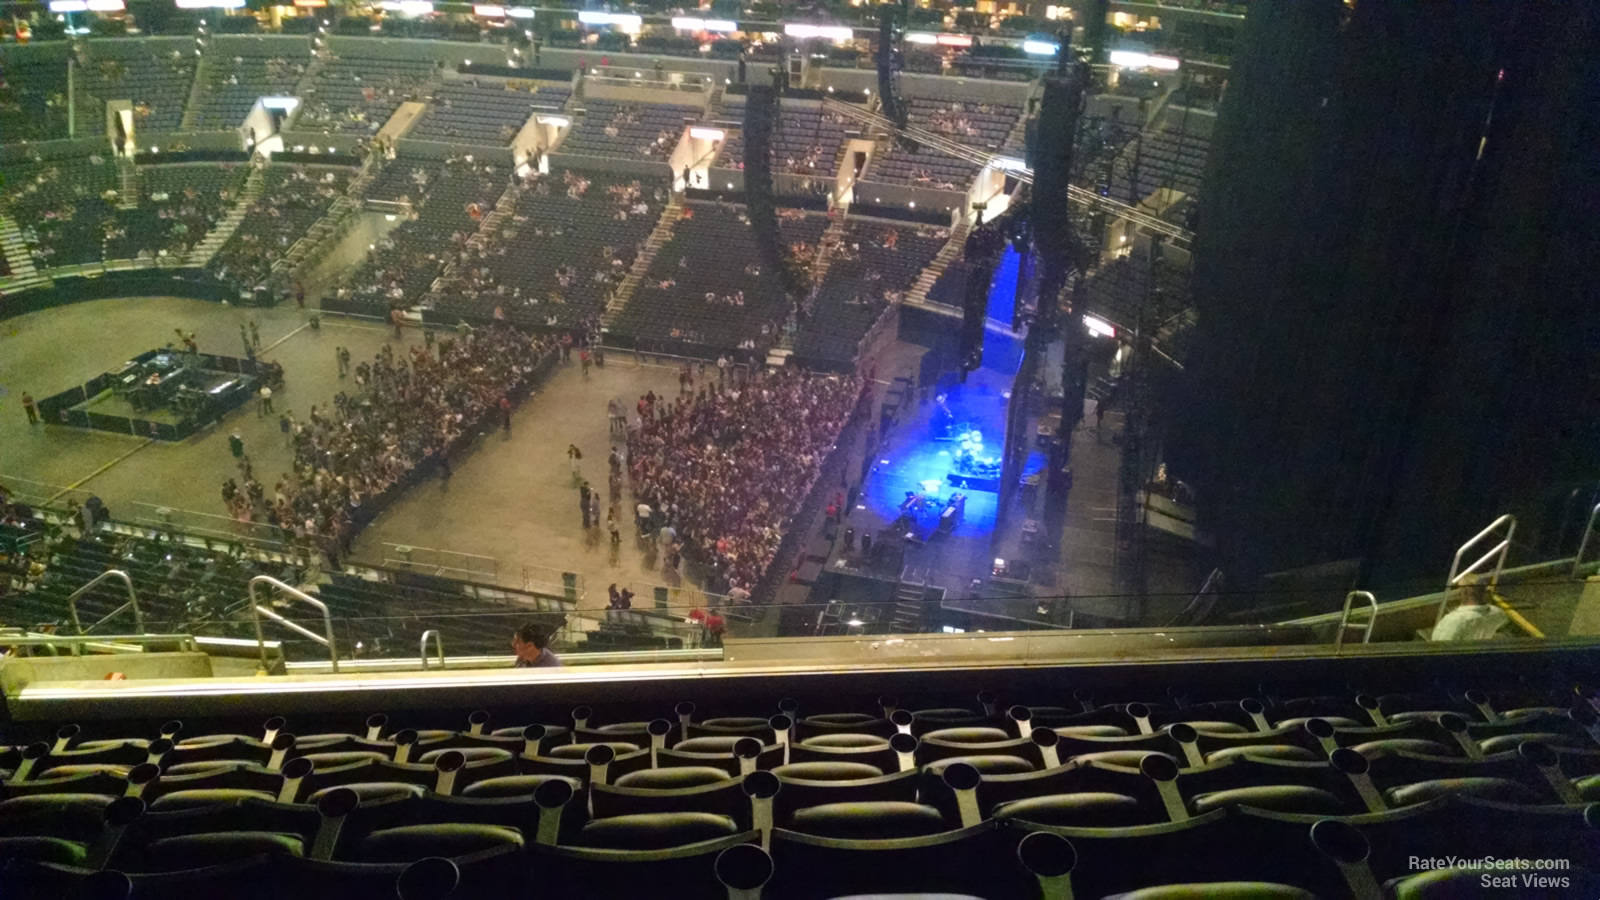 Staples Center Section 332 Concert Seating Rateyourseats Com